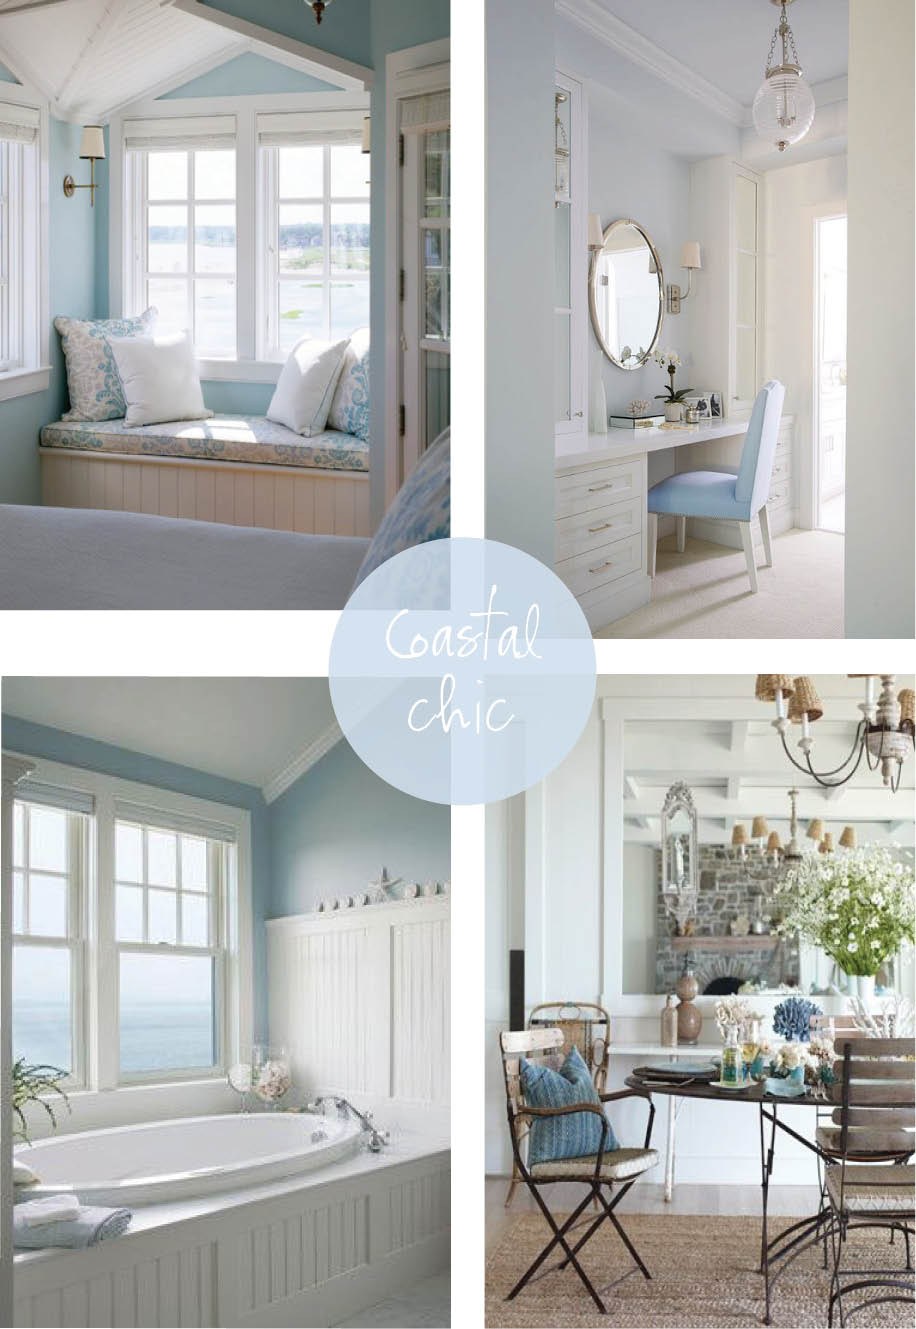 Coastal style pale blue beige hamptons style for Hamptons decor